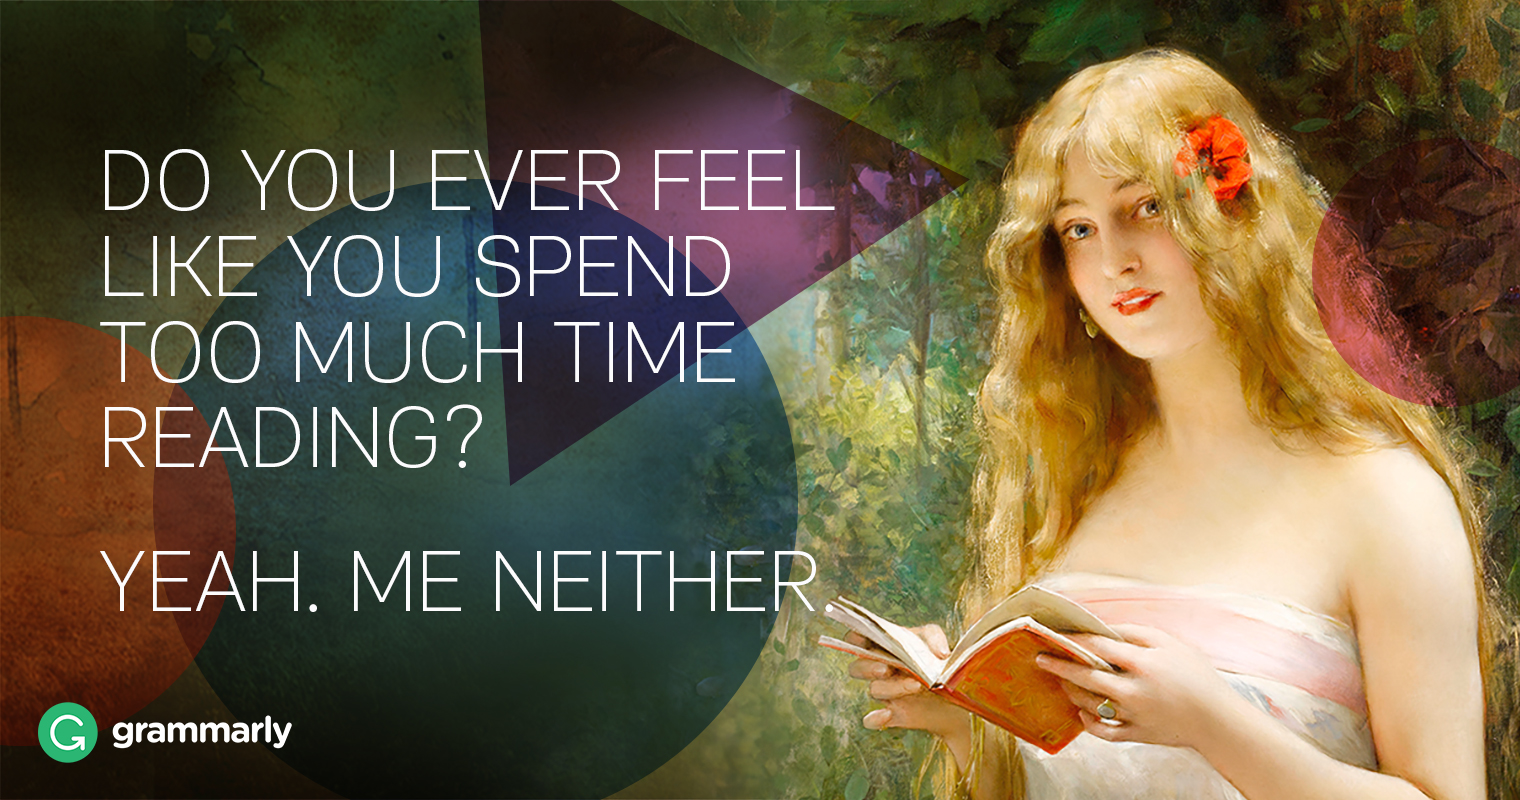 Ever feel like you're spending too much time reading? Me neither.